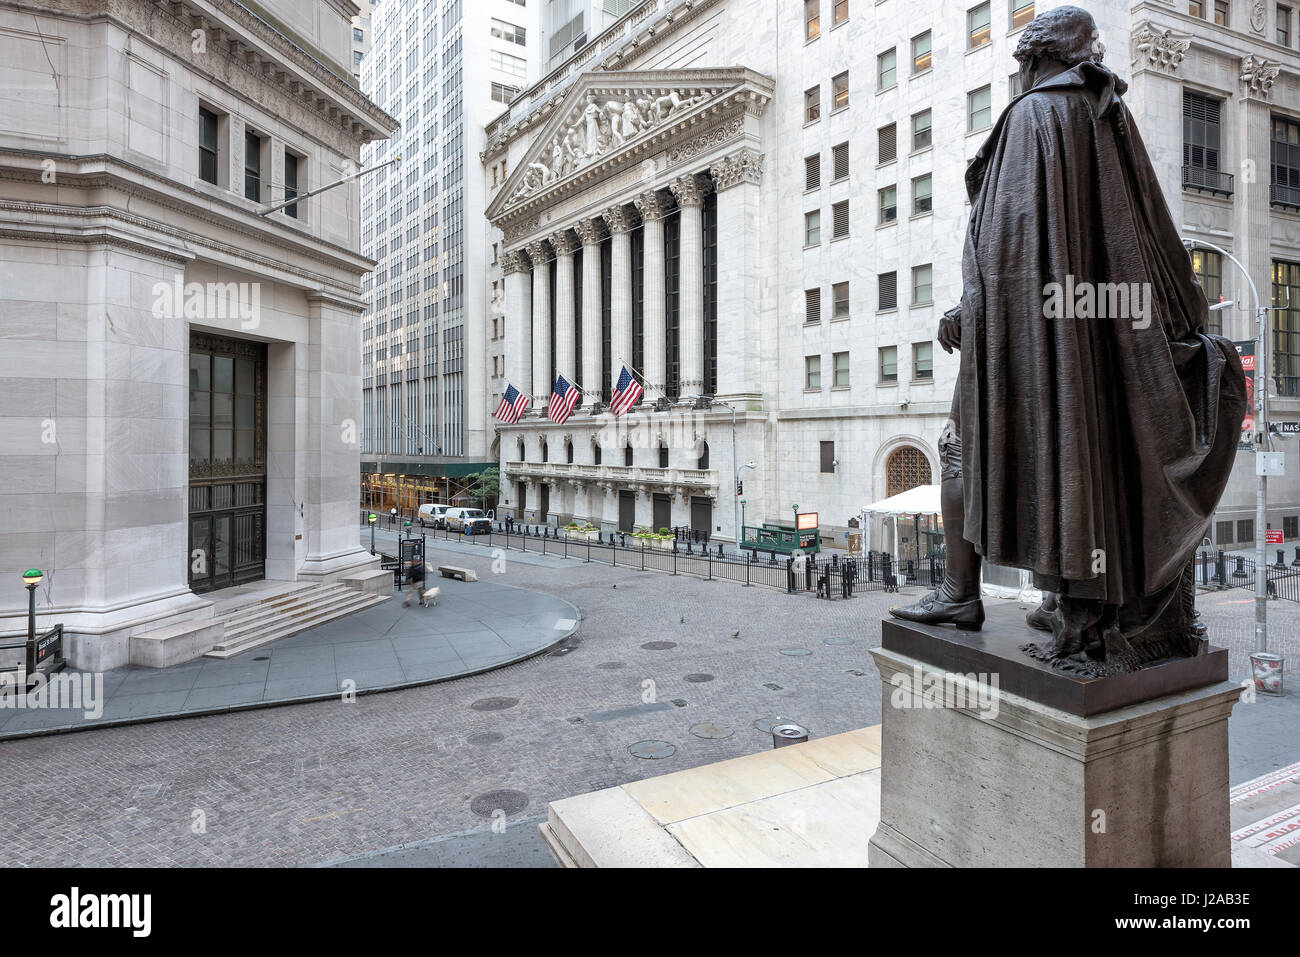 A view of Wall Street from the steps of the Federal Hall on a sunny day in New York, NY. - Stock Image